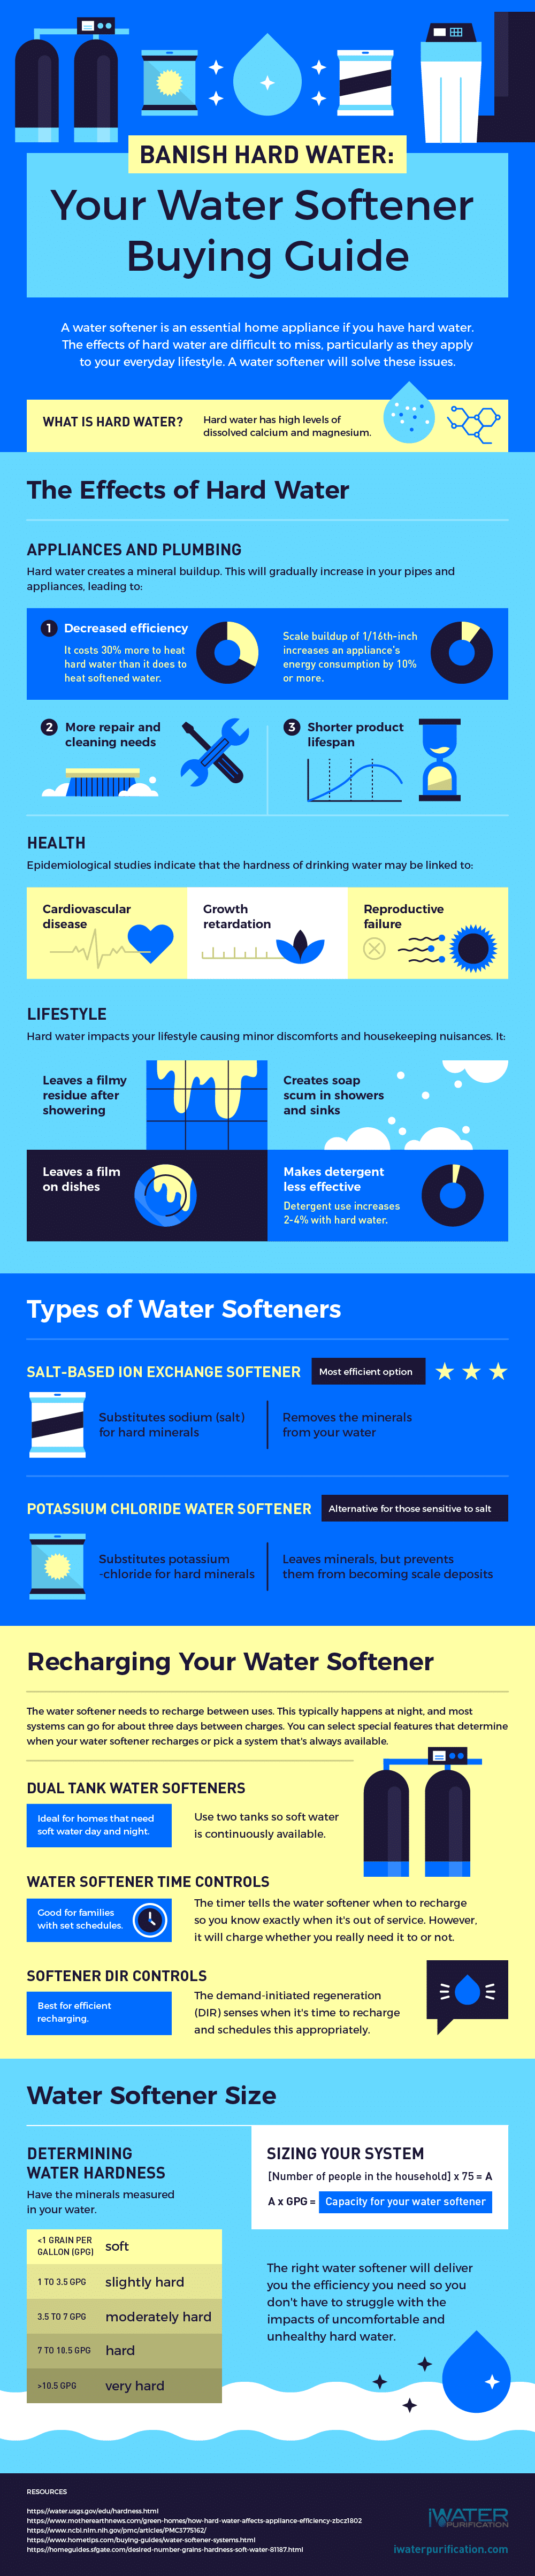 Water softener buying guide infograph showing the different sizes, types and options for water softeners and explains the benefits they offer provide